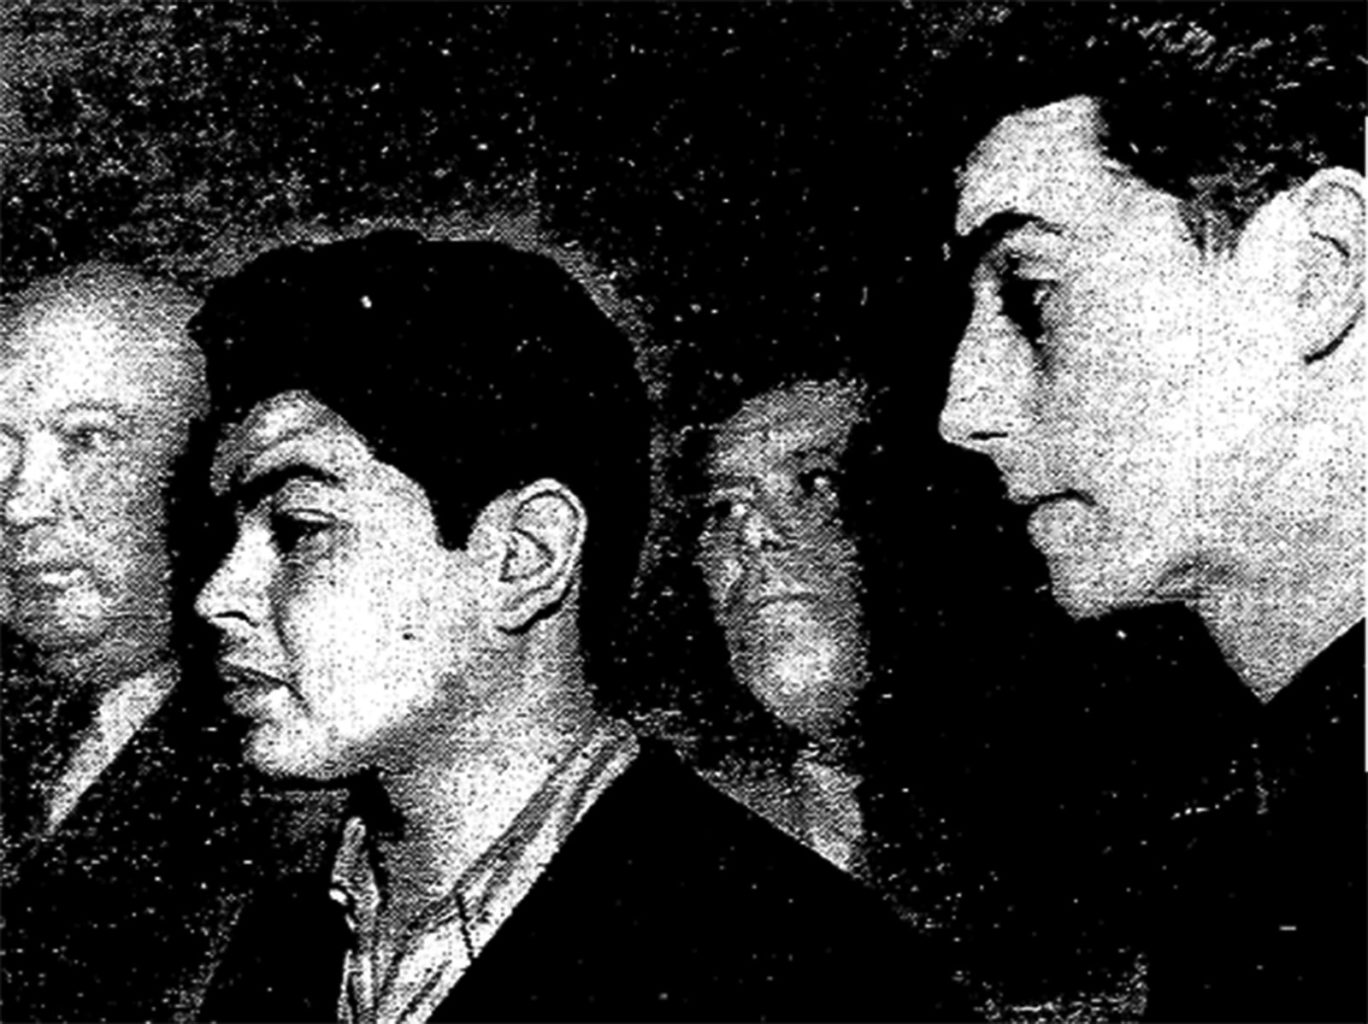 """Frank Crone, center, Ernest Pla, right, and William Daly, not pictured, were dubbed the """"Baby Bandits"""" for their brash-yet-sophisticated crimes. (Courtesy photo)"""